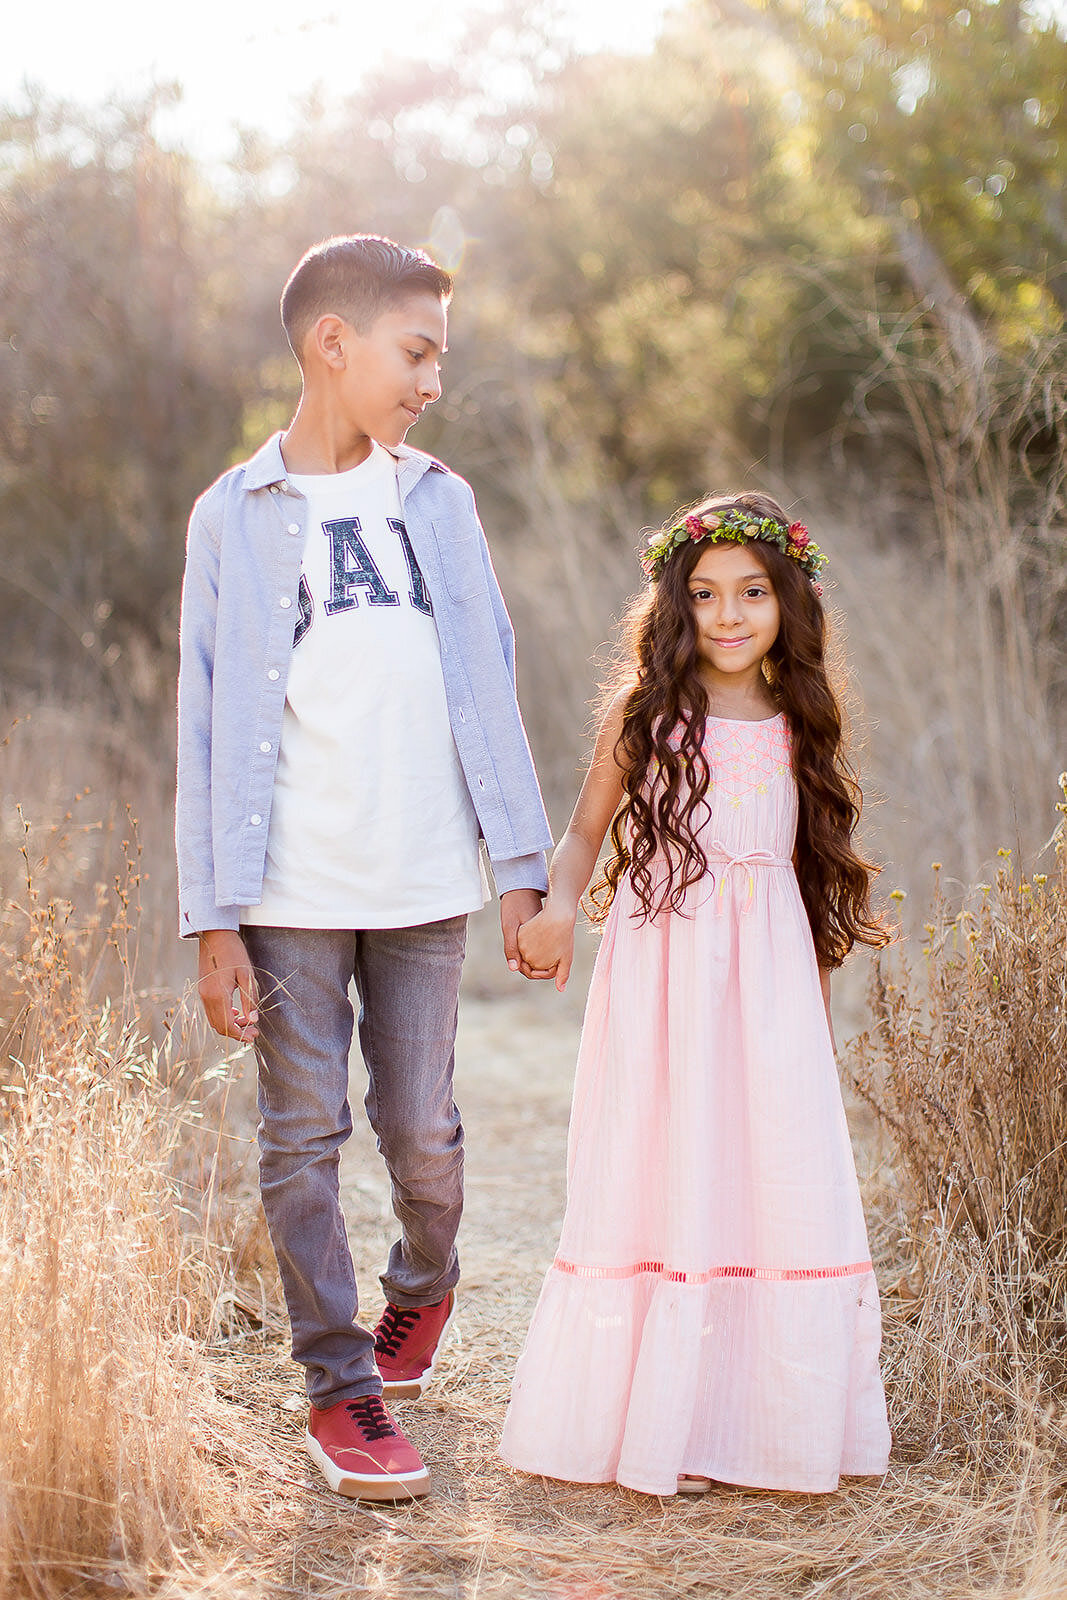 brother and sister holding hands walking through field